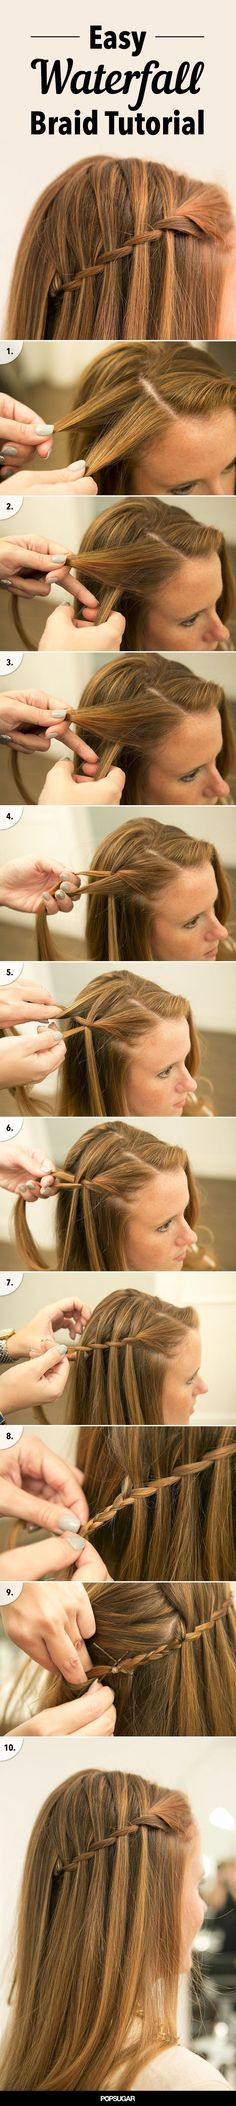 15 Easy Braid Tutorials You Have Never Tried Before